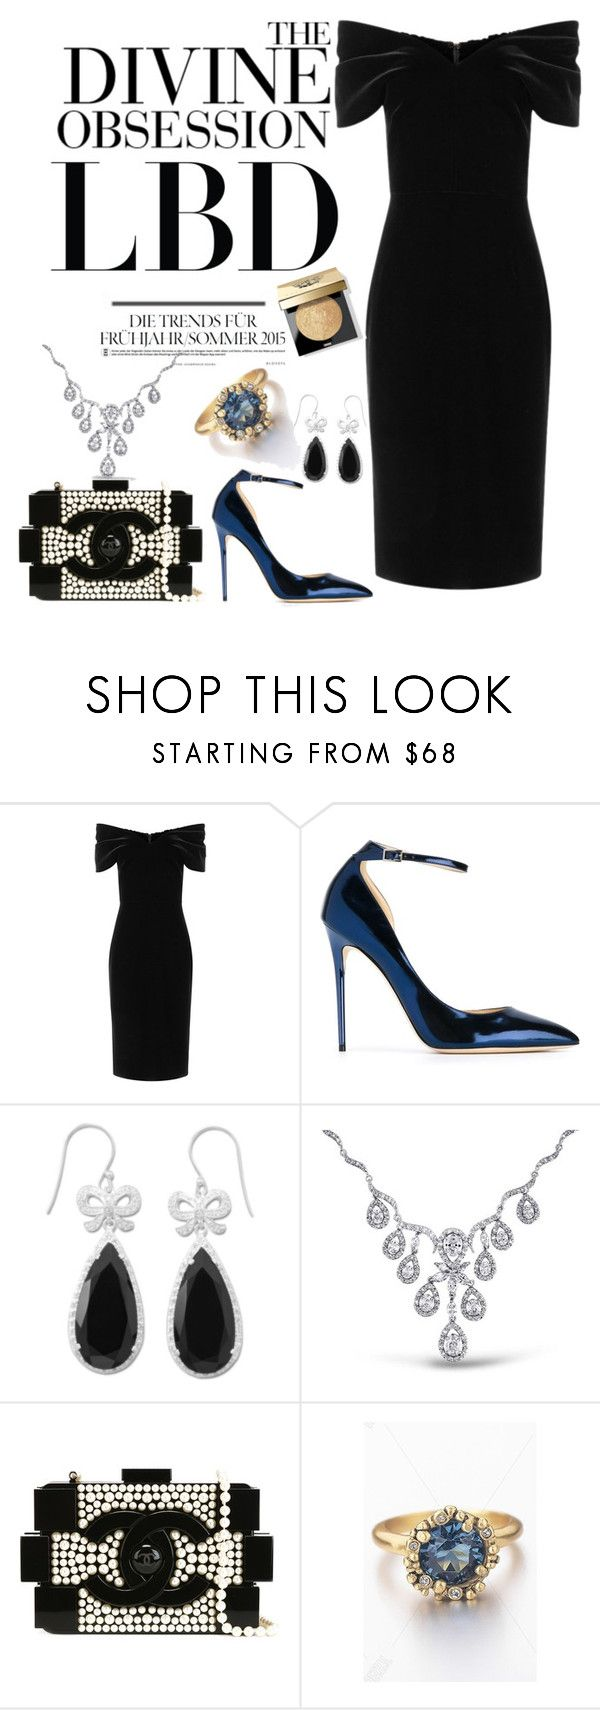 """The LBD"" by tfashionspeaks ❤ liked on Polyvore featuring Emilio De La Morena, Jimmy Choo, Vera Wang, BillyTheTree, Bling Jewelry, Chanel and Bobbi Brown Cosmetics"